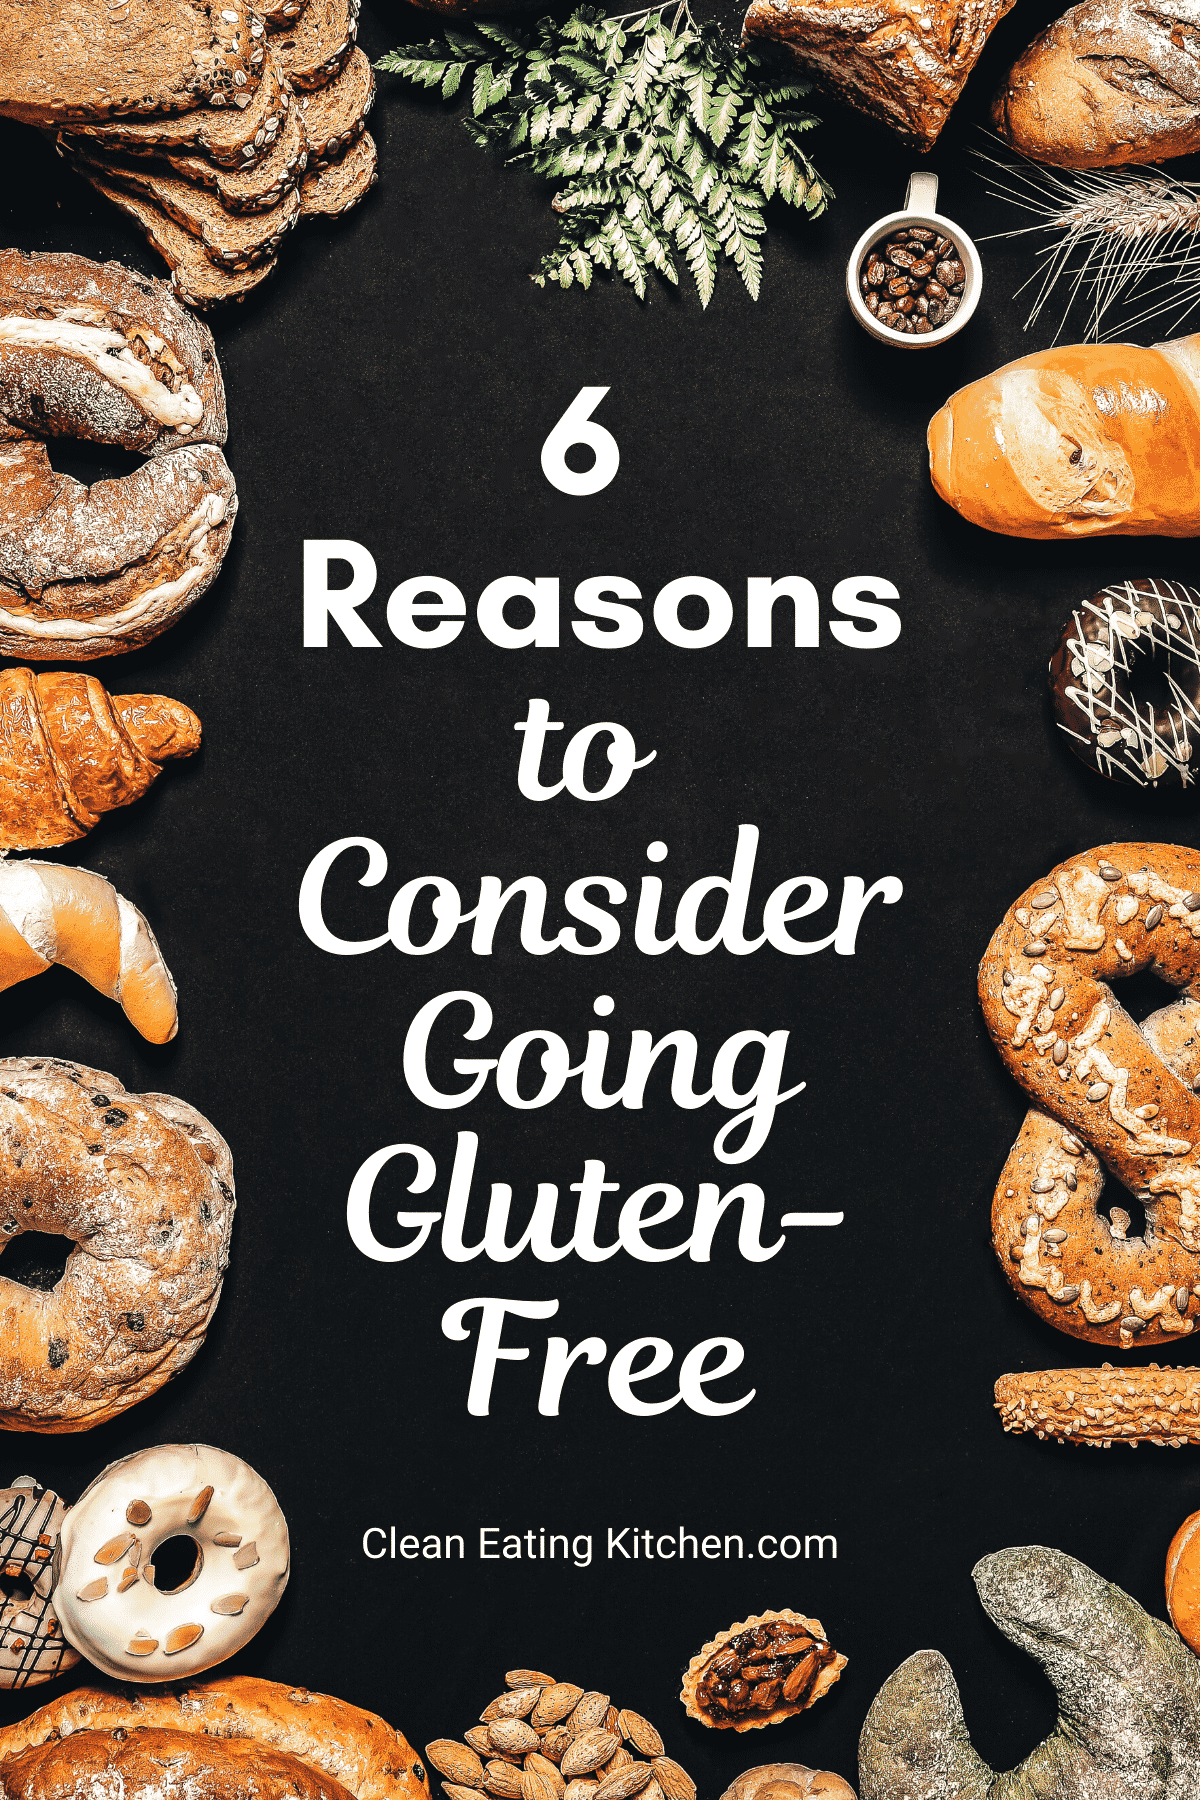 reasons to go gluten free image